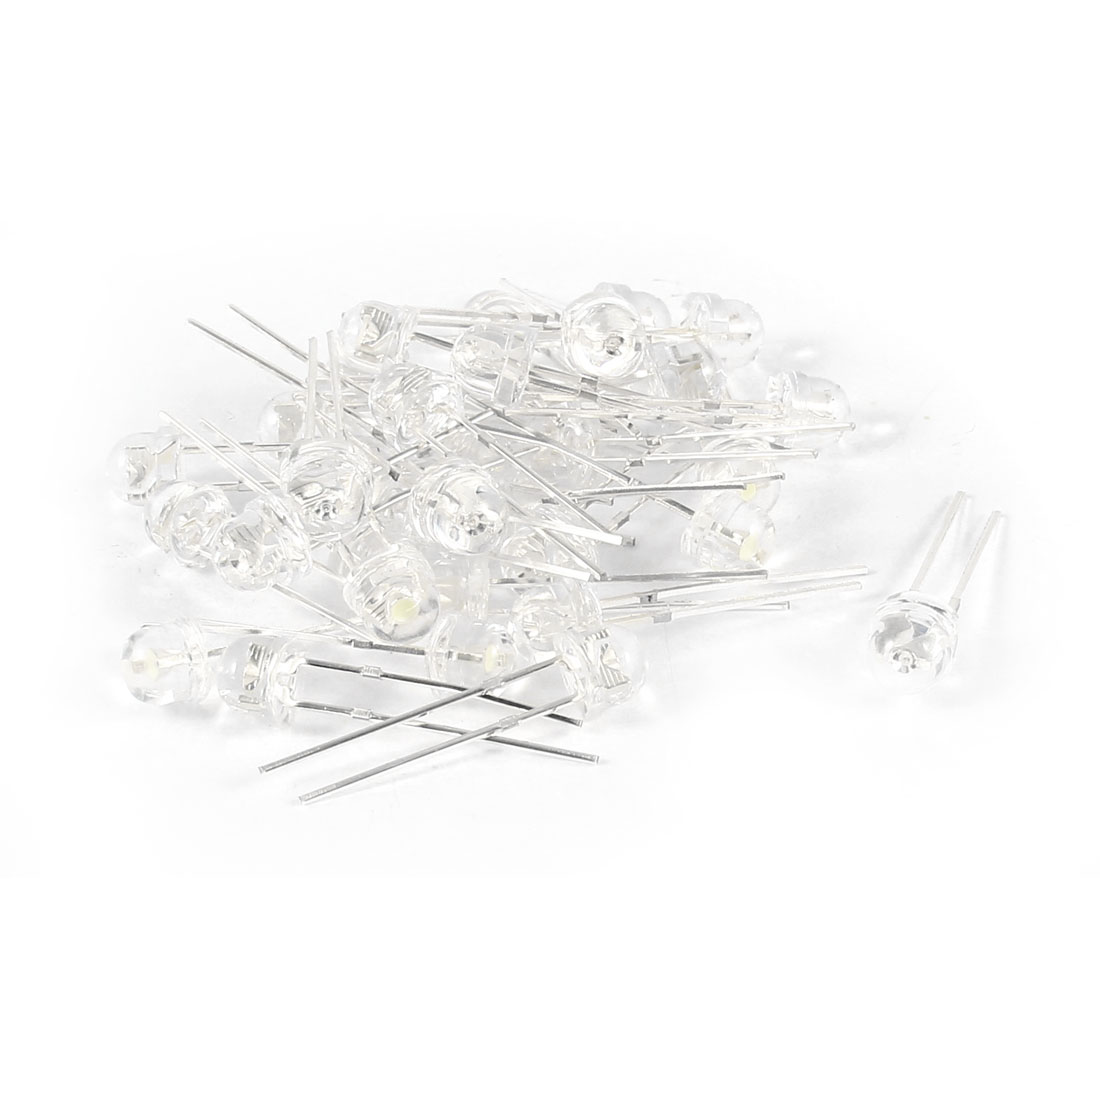 50 Pcs Straw Hat 5mm Red Green White LED Lamp Light Emitting Diodes Replacements